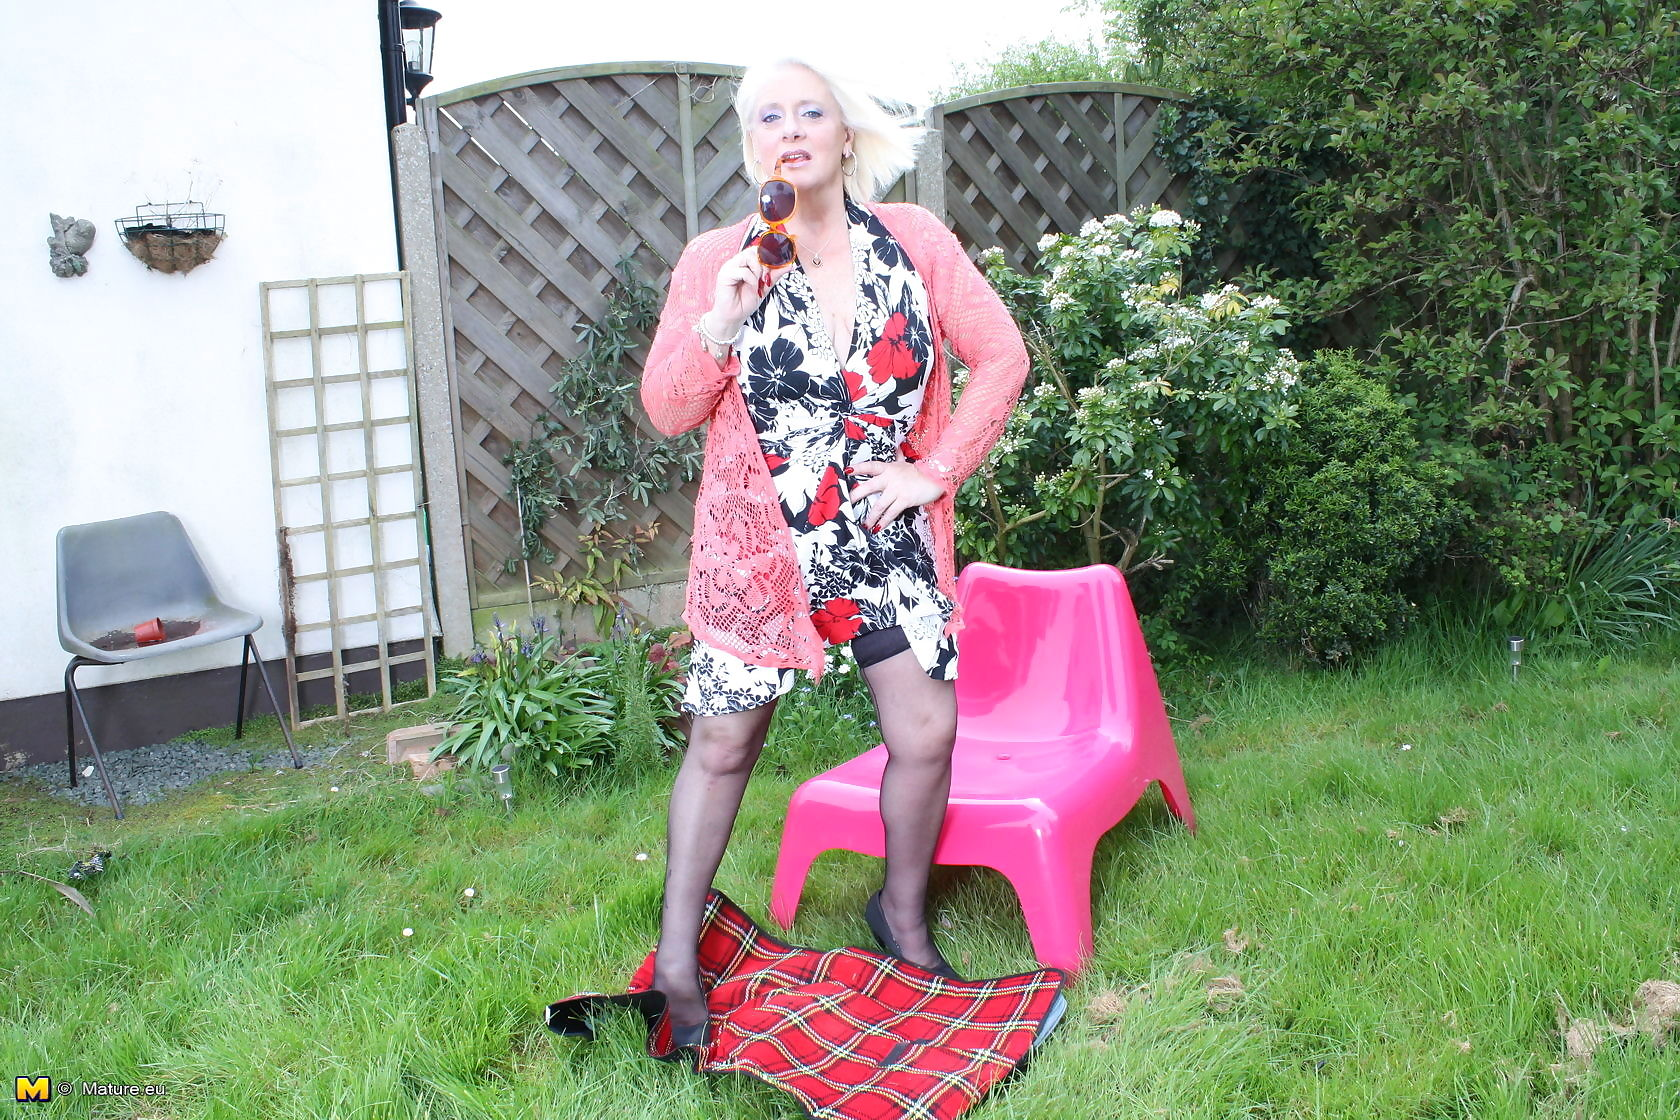 Naughty british housewife getting dirty in the garden - part 3460